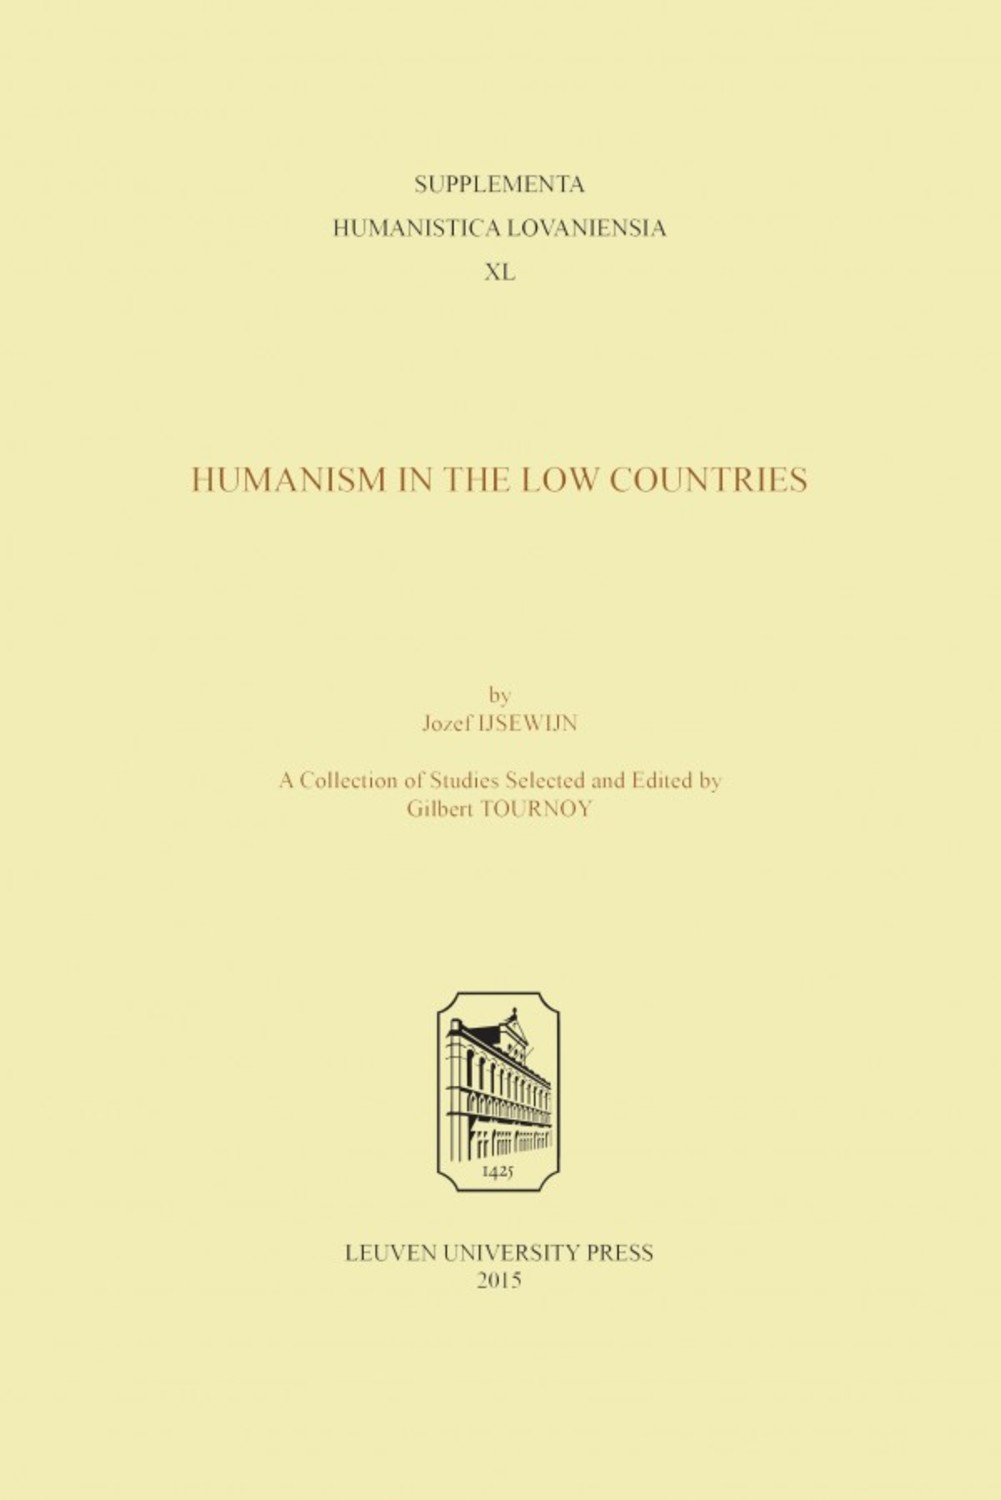 Josef Ijsewijn. Humanism in the Low Countries